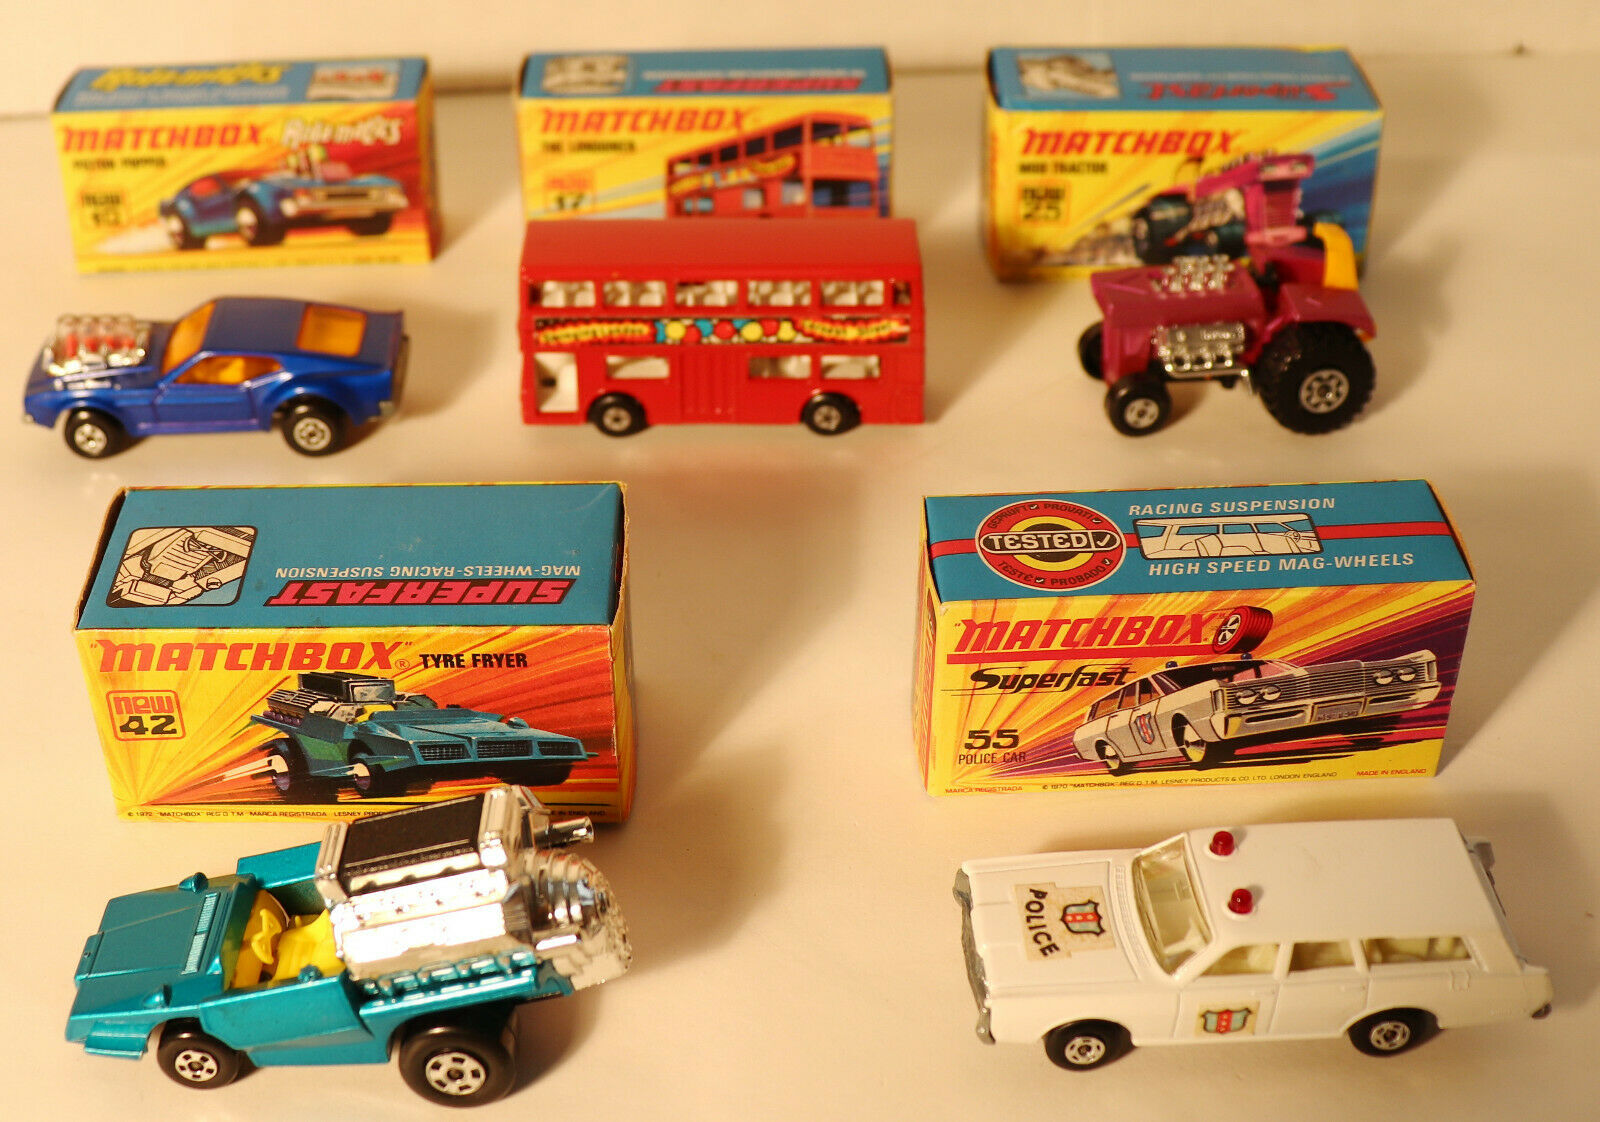 ETTD 5 années 1970 Boxed LESNEY MATCHBOX SUPERFAST 10-B, 17-B, 25-B, 42-B, & 55-B NIOB